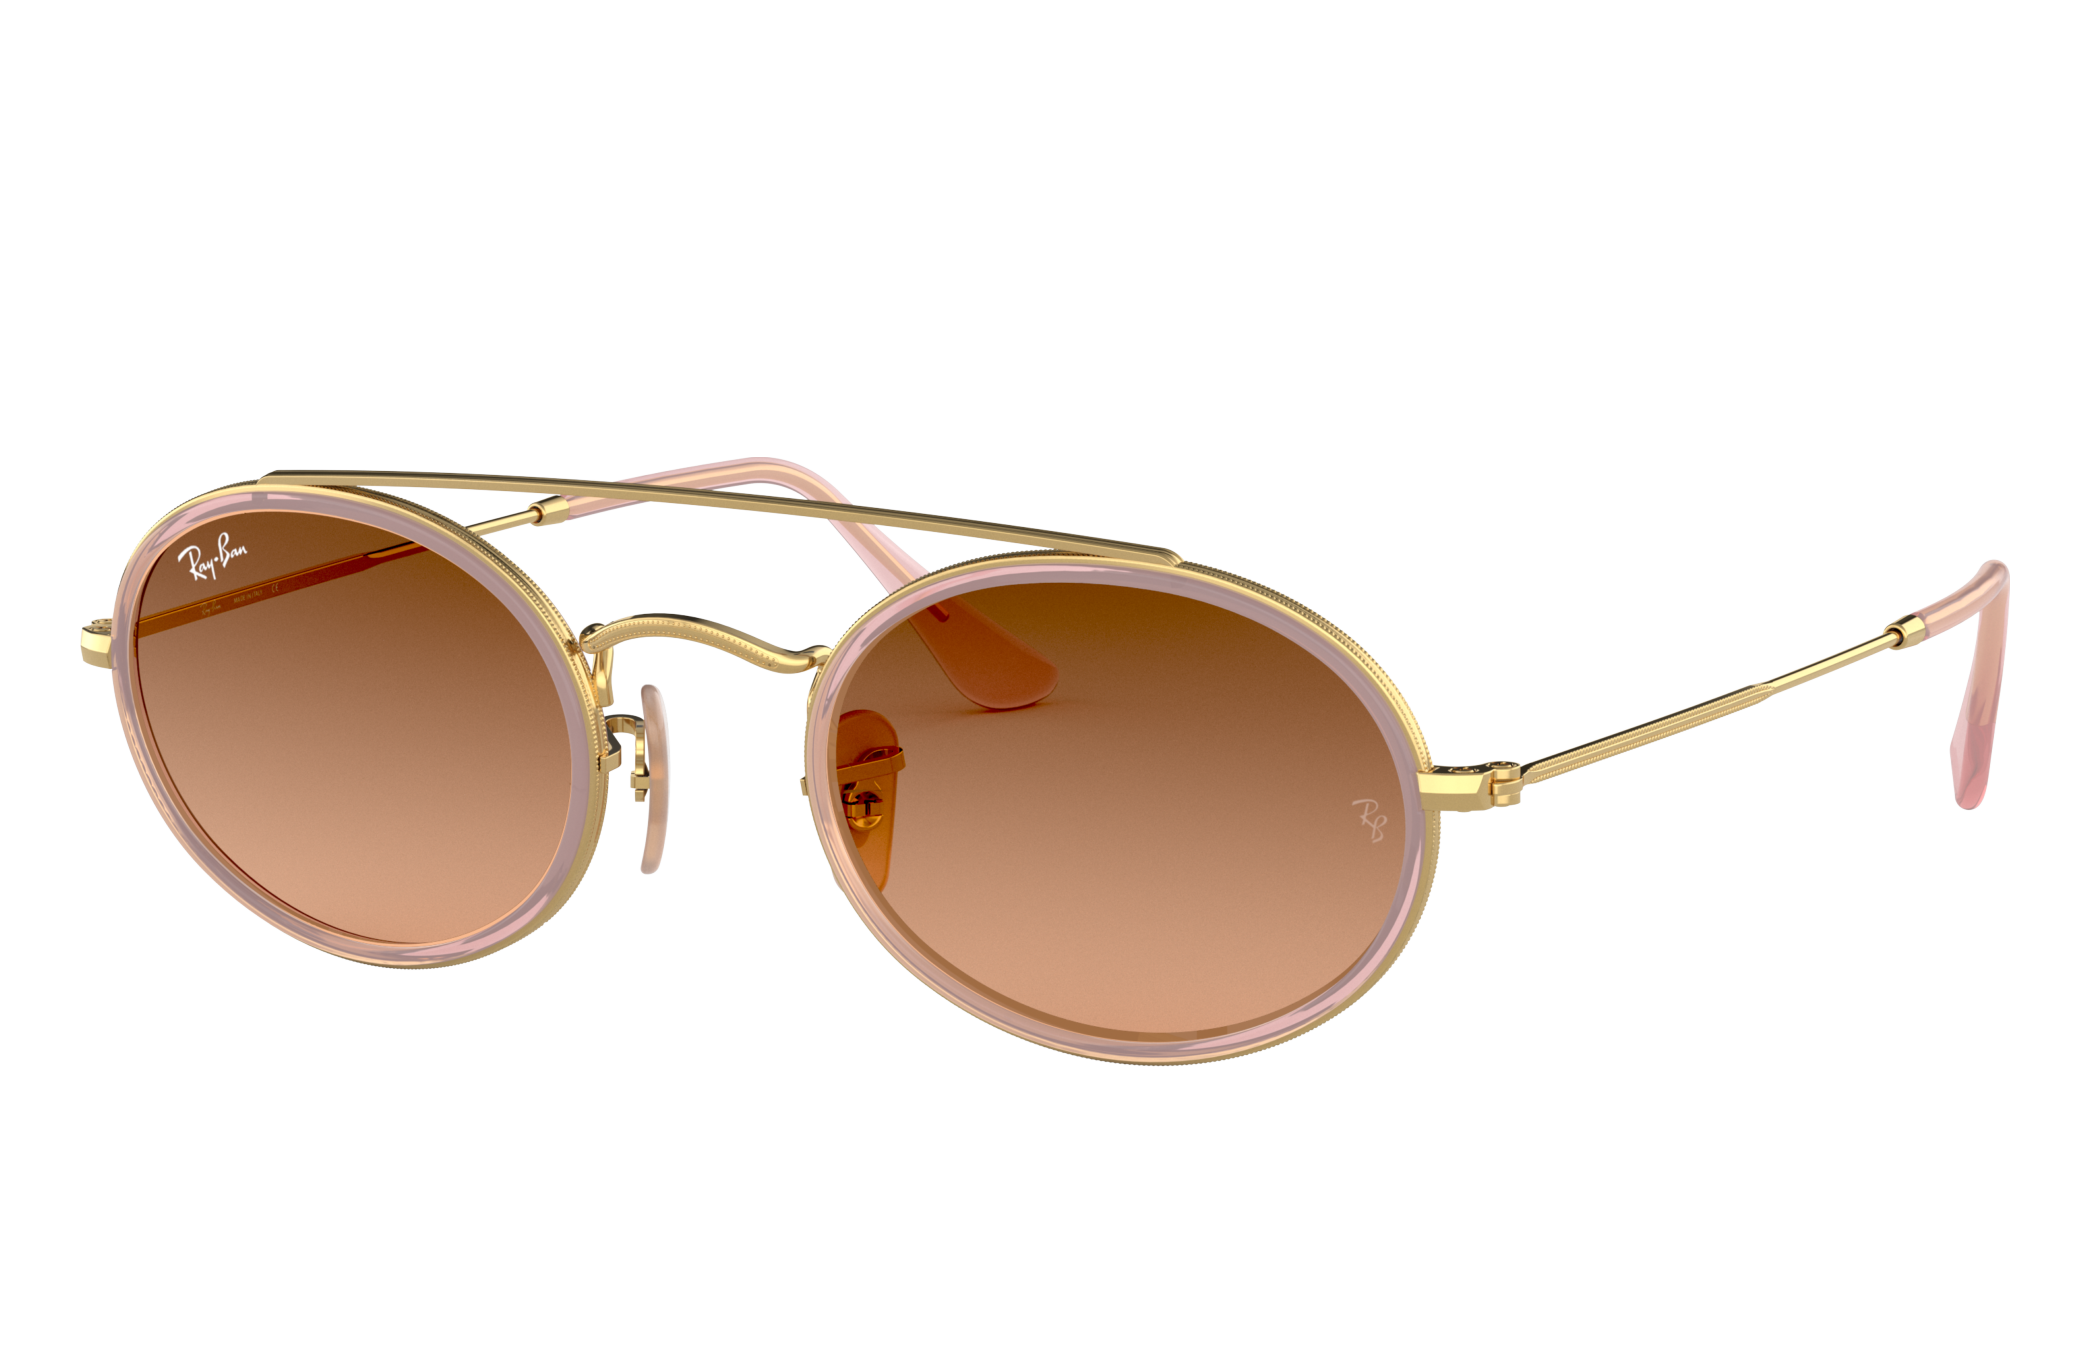 Ray-Ban Oval Double Bridge Gold, Pink Lenses - RB3847N